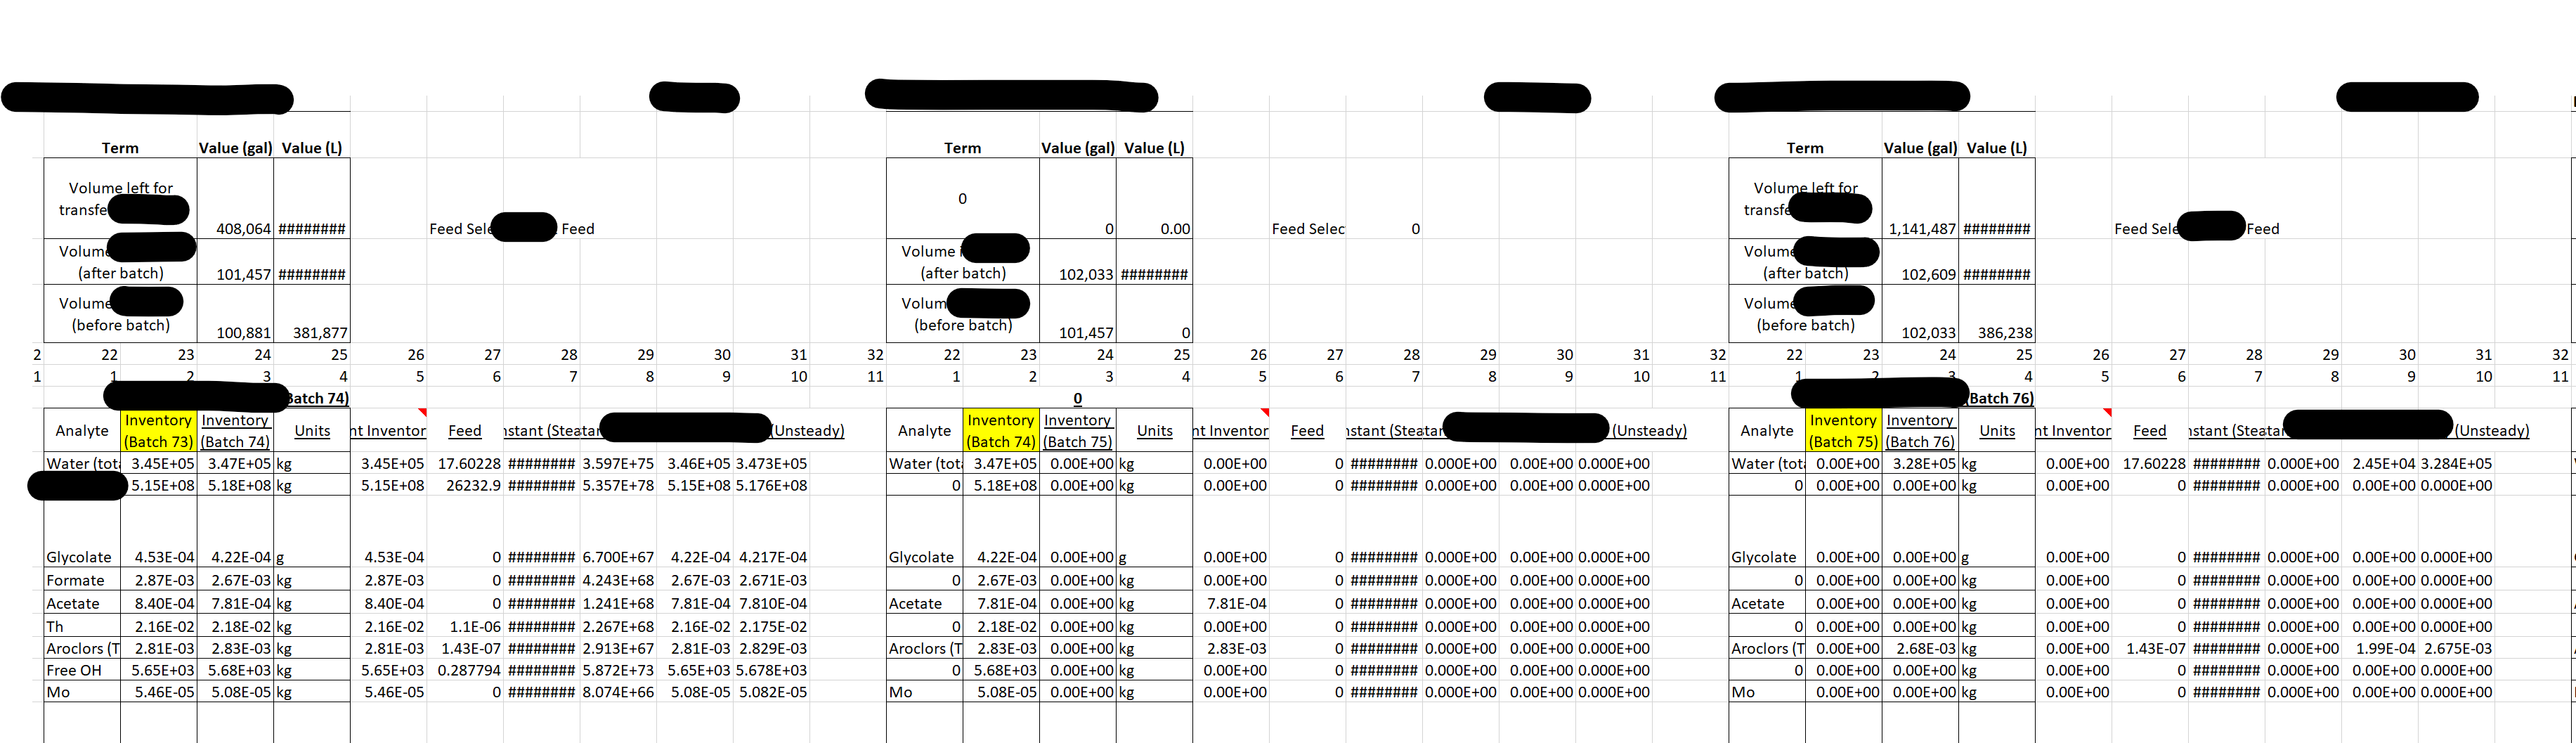 Is There A Way To Prevent Public Variables From Reverting